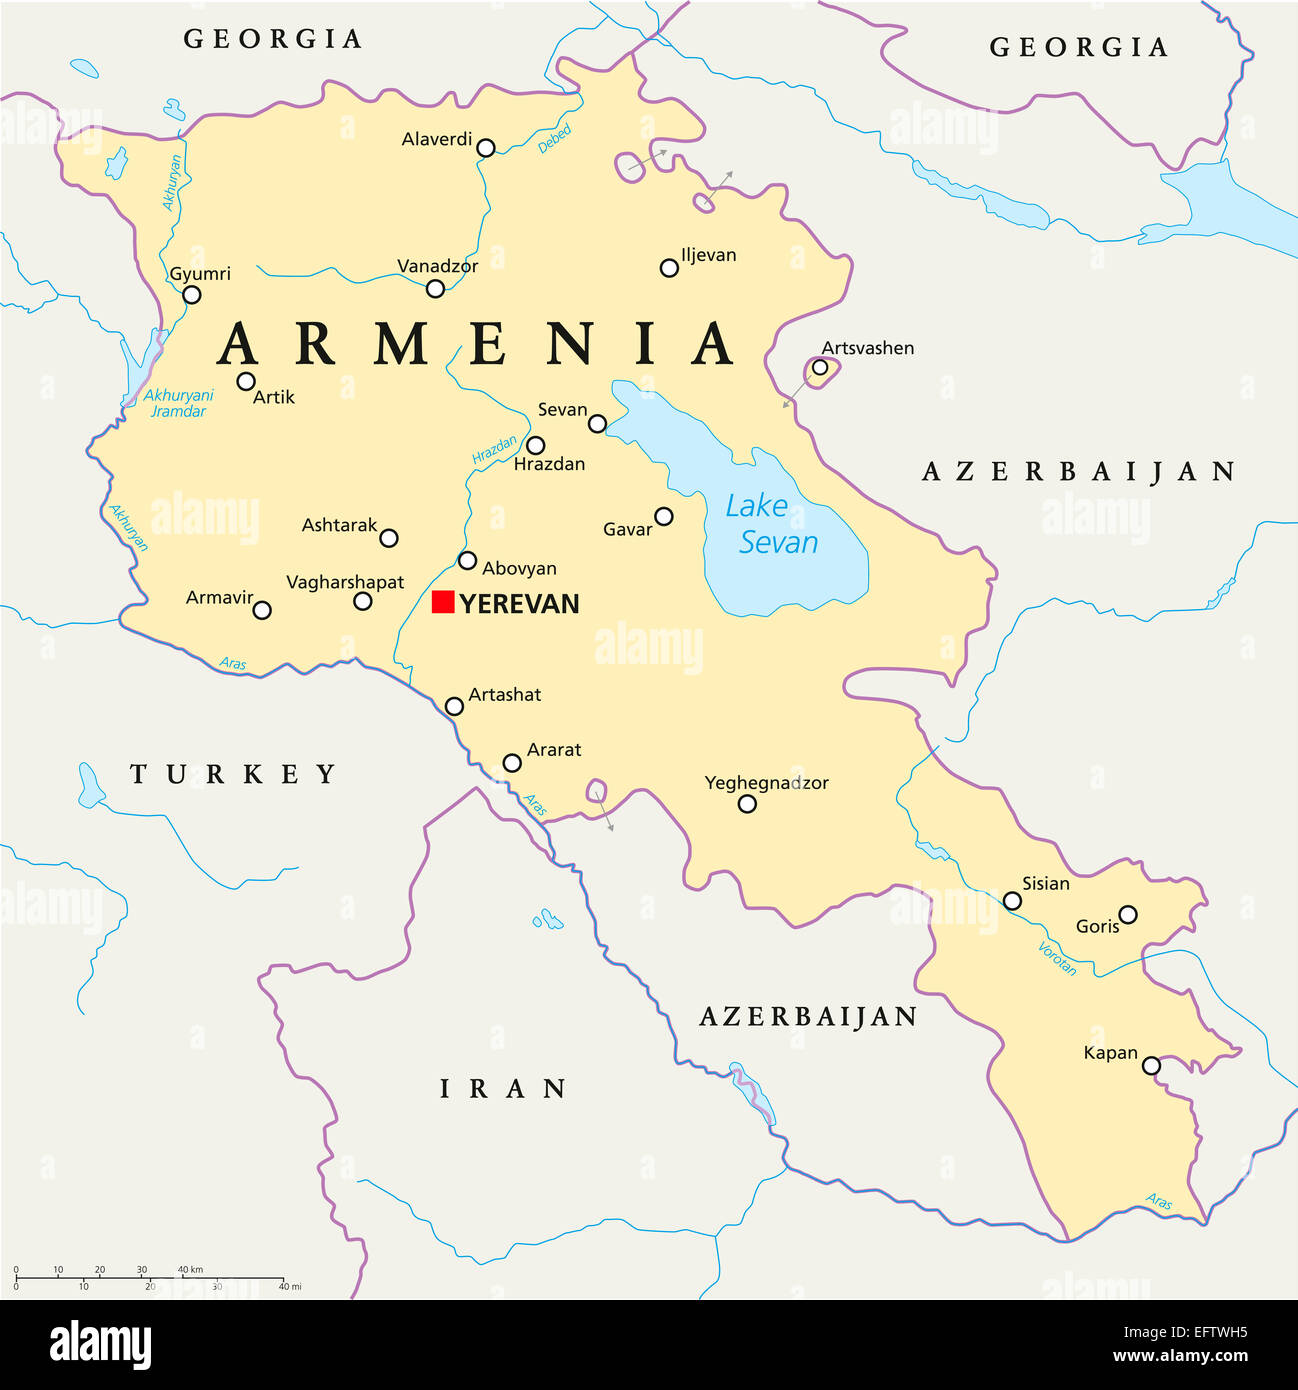 Armenia Political Map With Capital Yerevan National Borders Stock - yerevan map